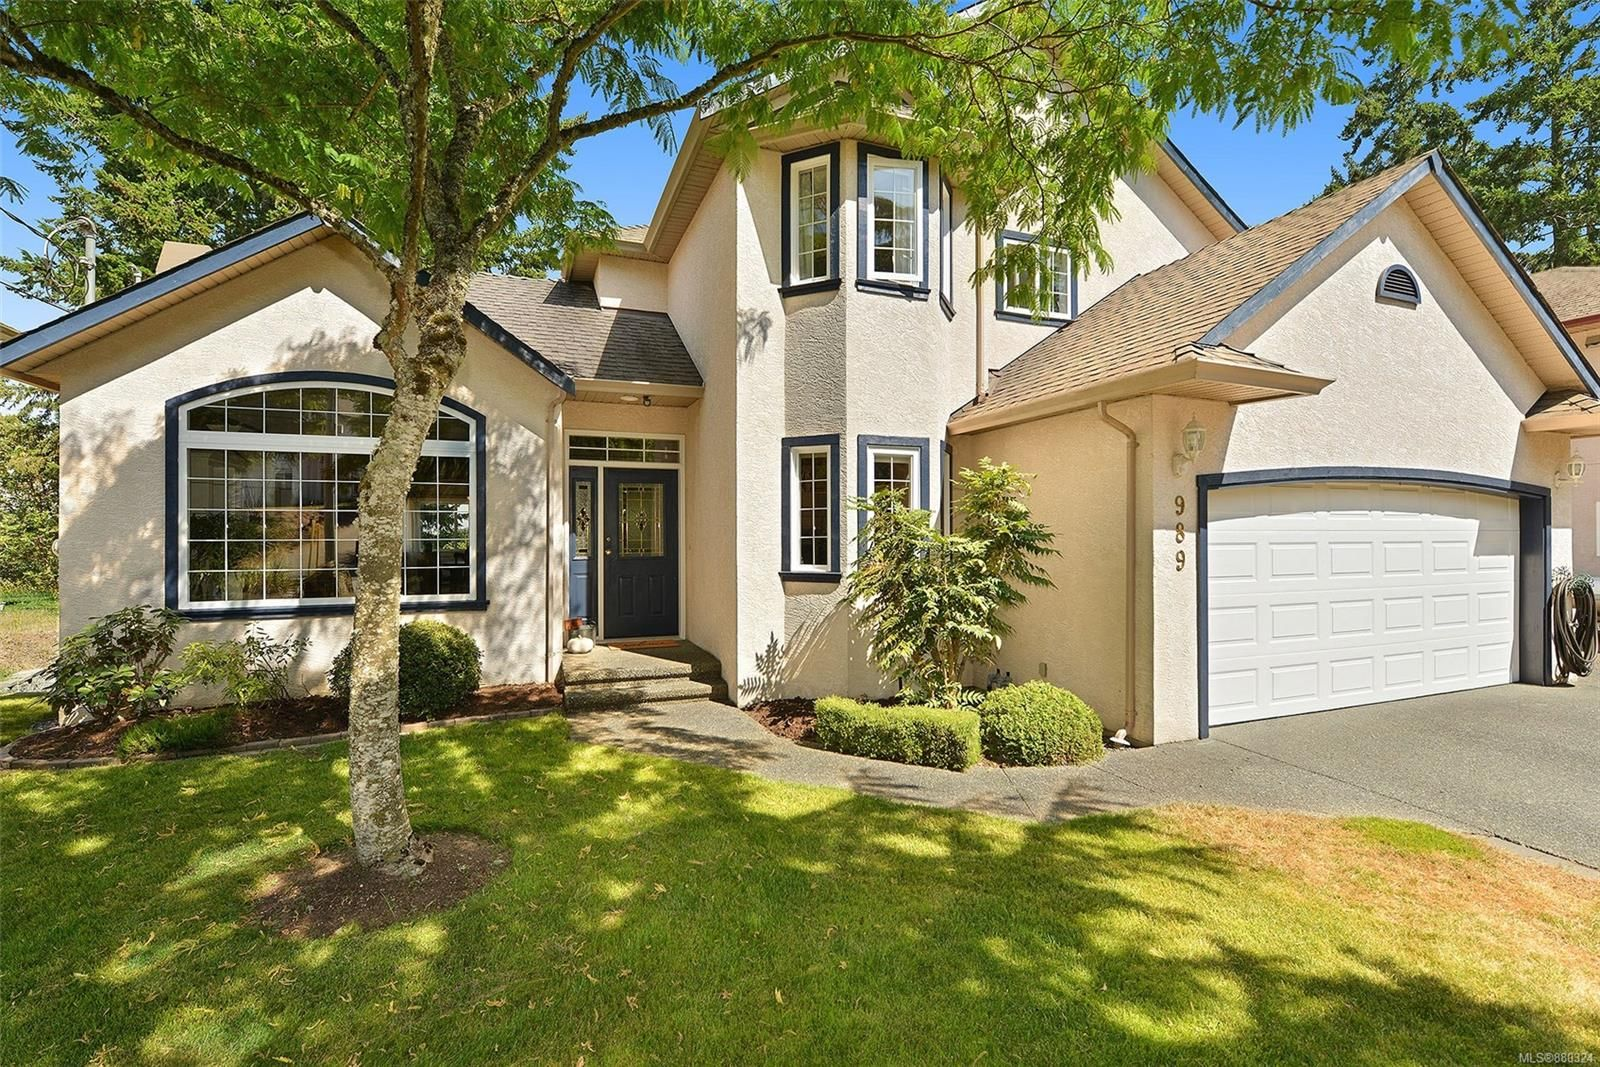 Main Photo: 989 Shaw Ave in : La Florence Lake House for sale (Langford)  : MLS®# 880324